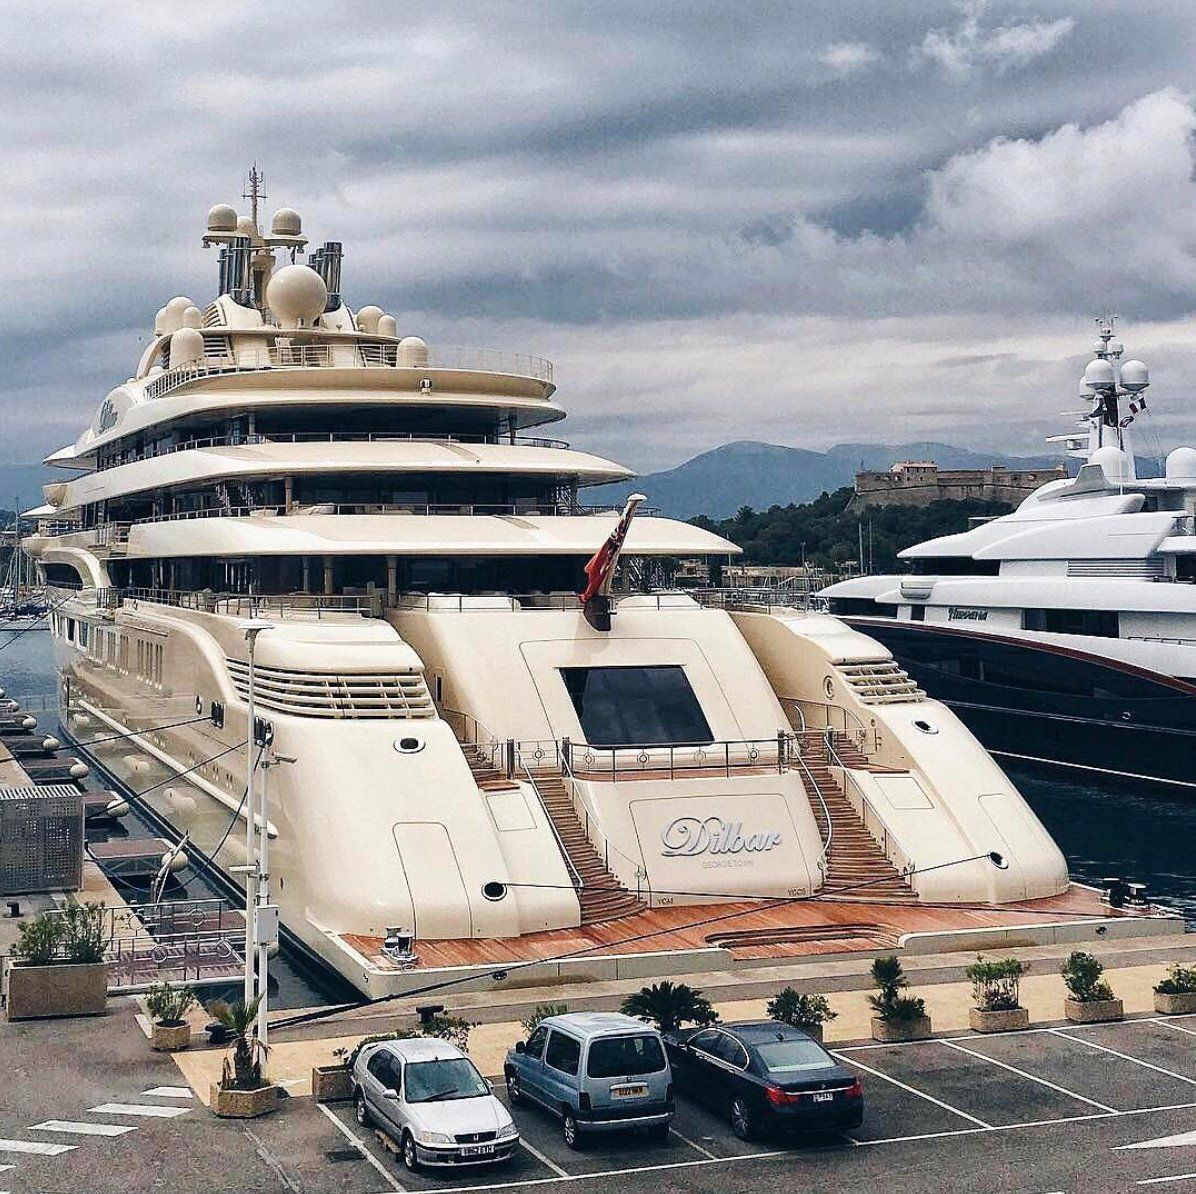 Dilbar The World S Largest Motor Yacht By Volume Owned By Alisher